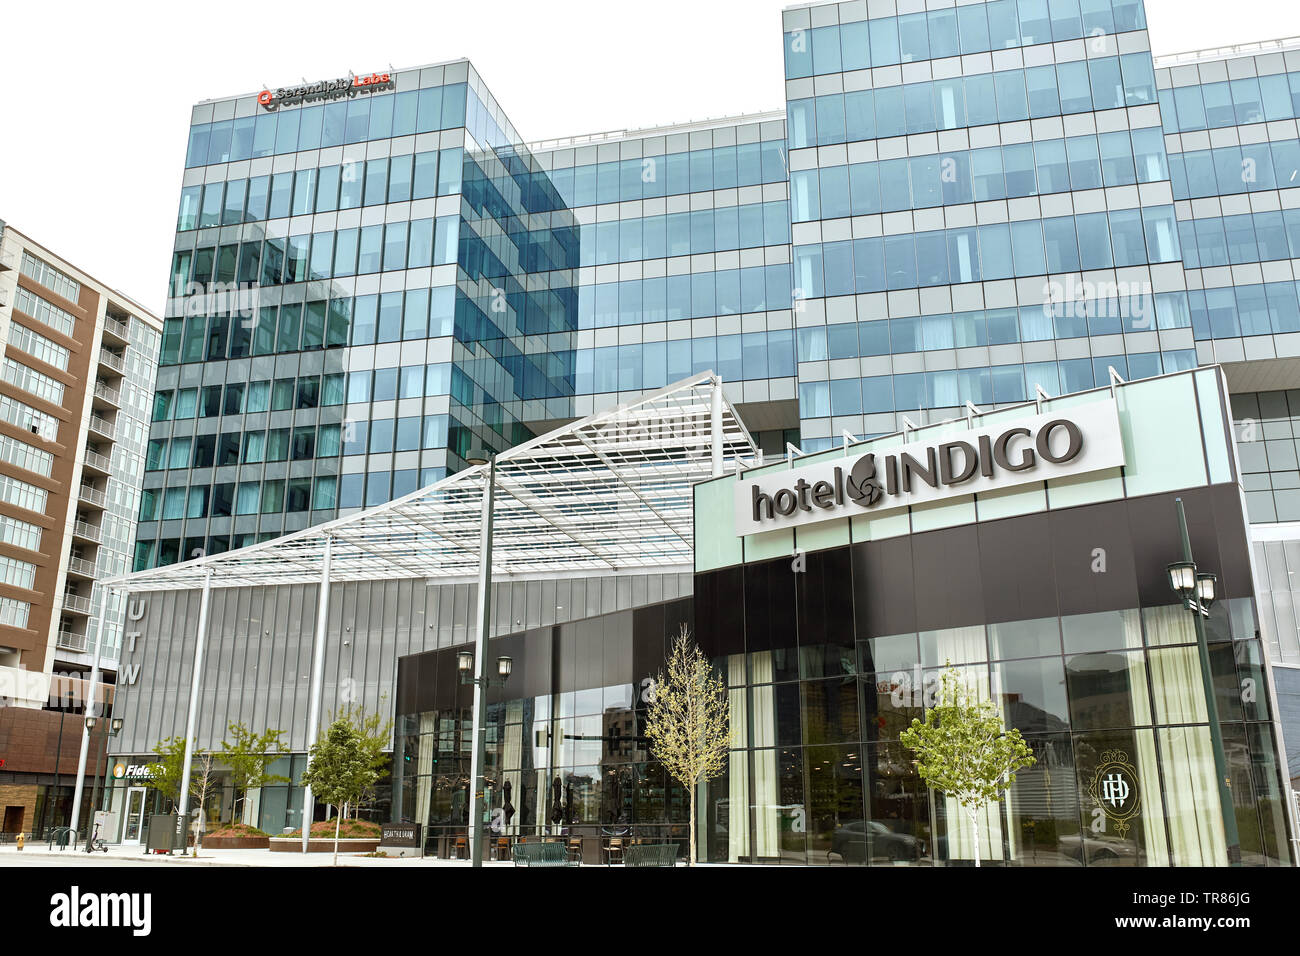 Exterior of Hotel Indigo near Union Station in downtown Denver, Colorado Stock Photo